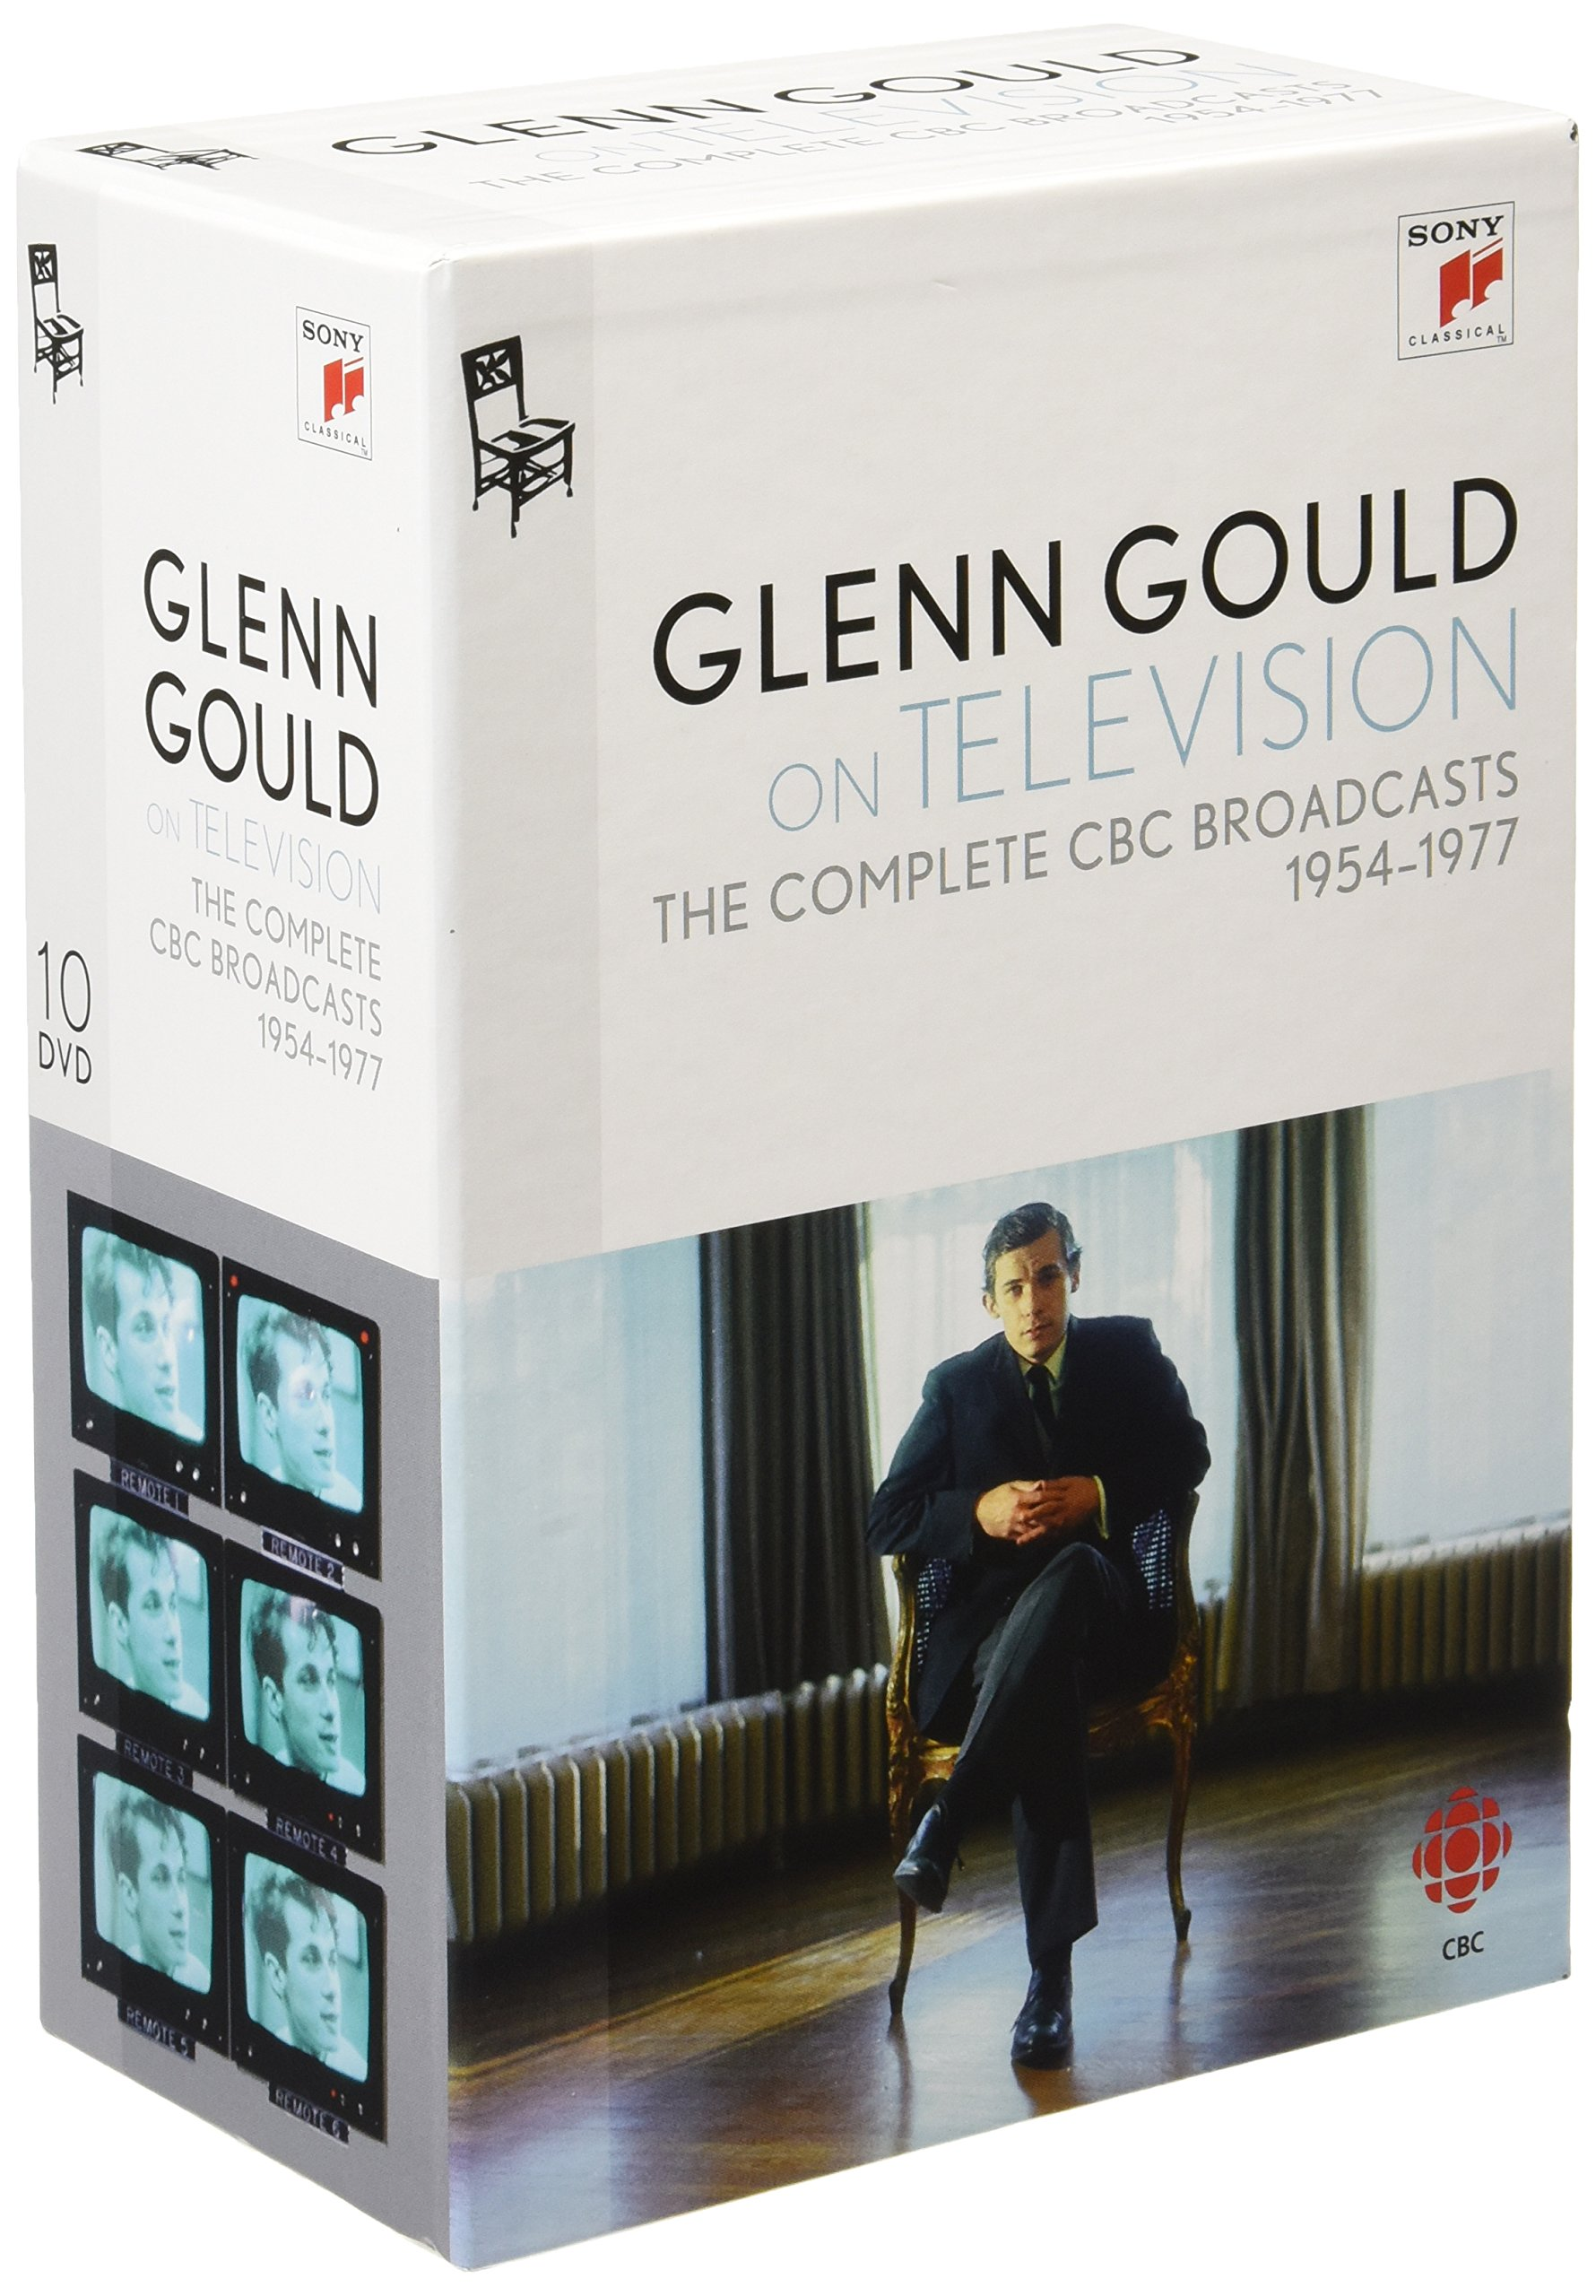 Glenn Gould on Television: The Complete CBC Broadcasts, 1954-1977